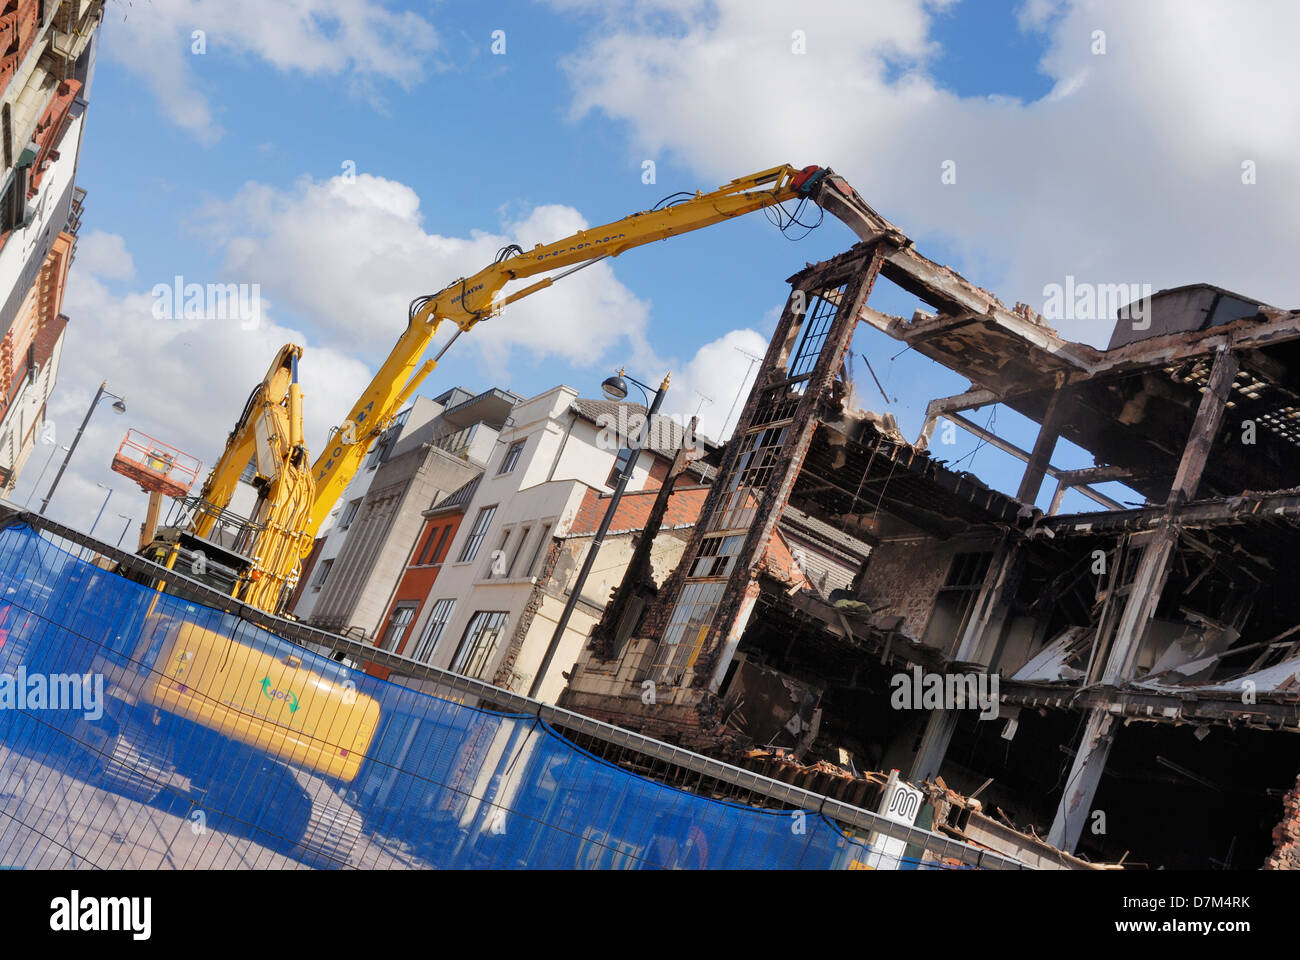 Demolition of a building damaged by fire in Oldham Street, Manchester. - Stock Image